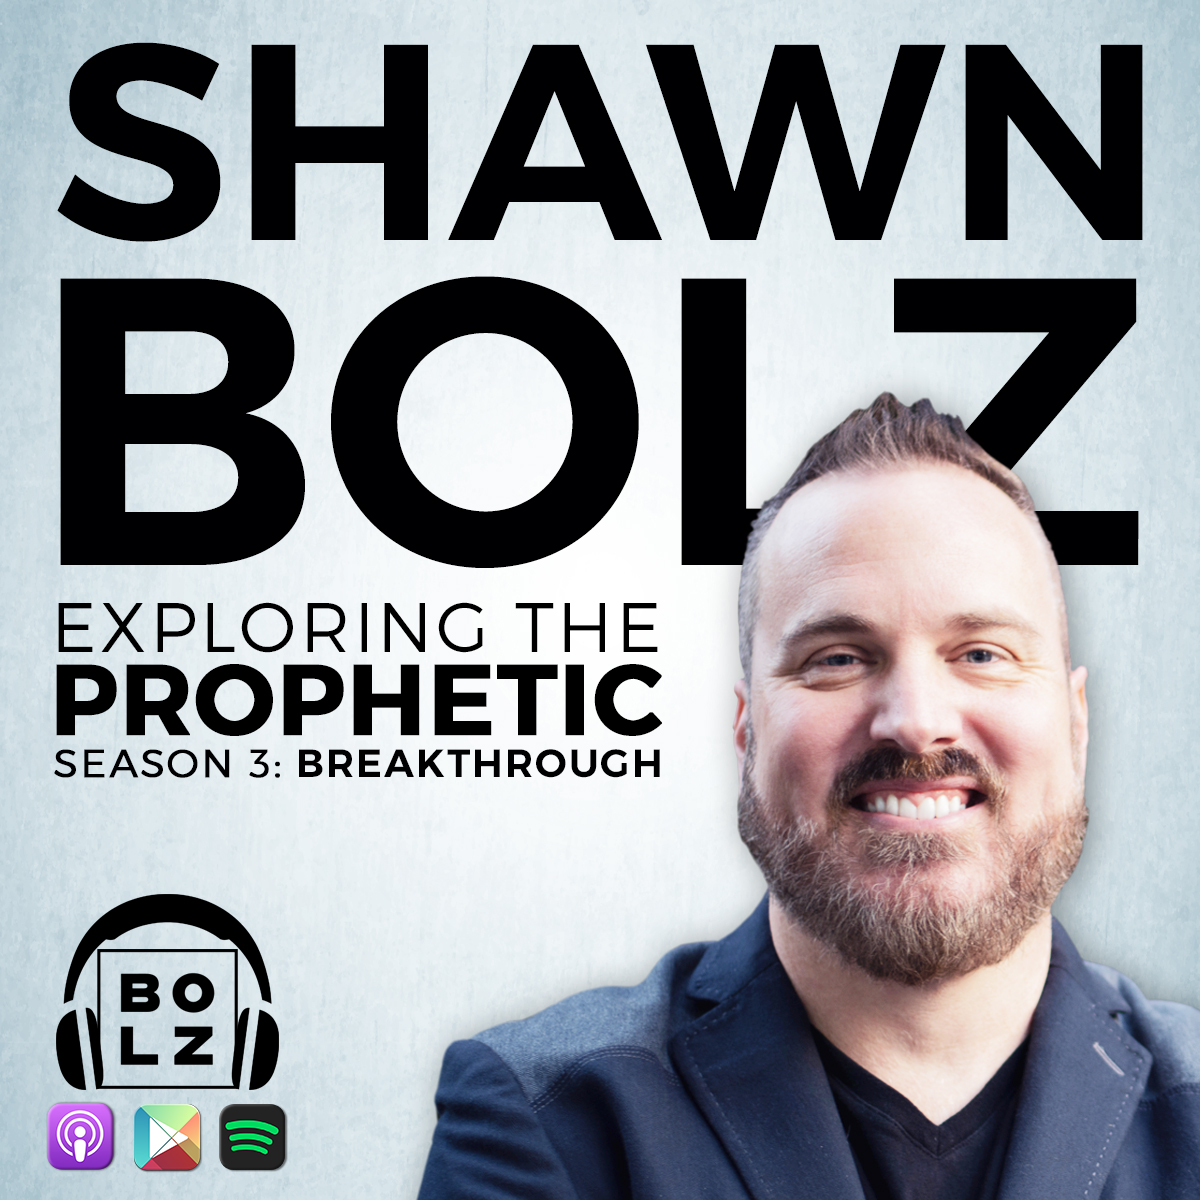 Exploring the Prophetic With Shawn Bolz | Podbay